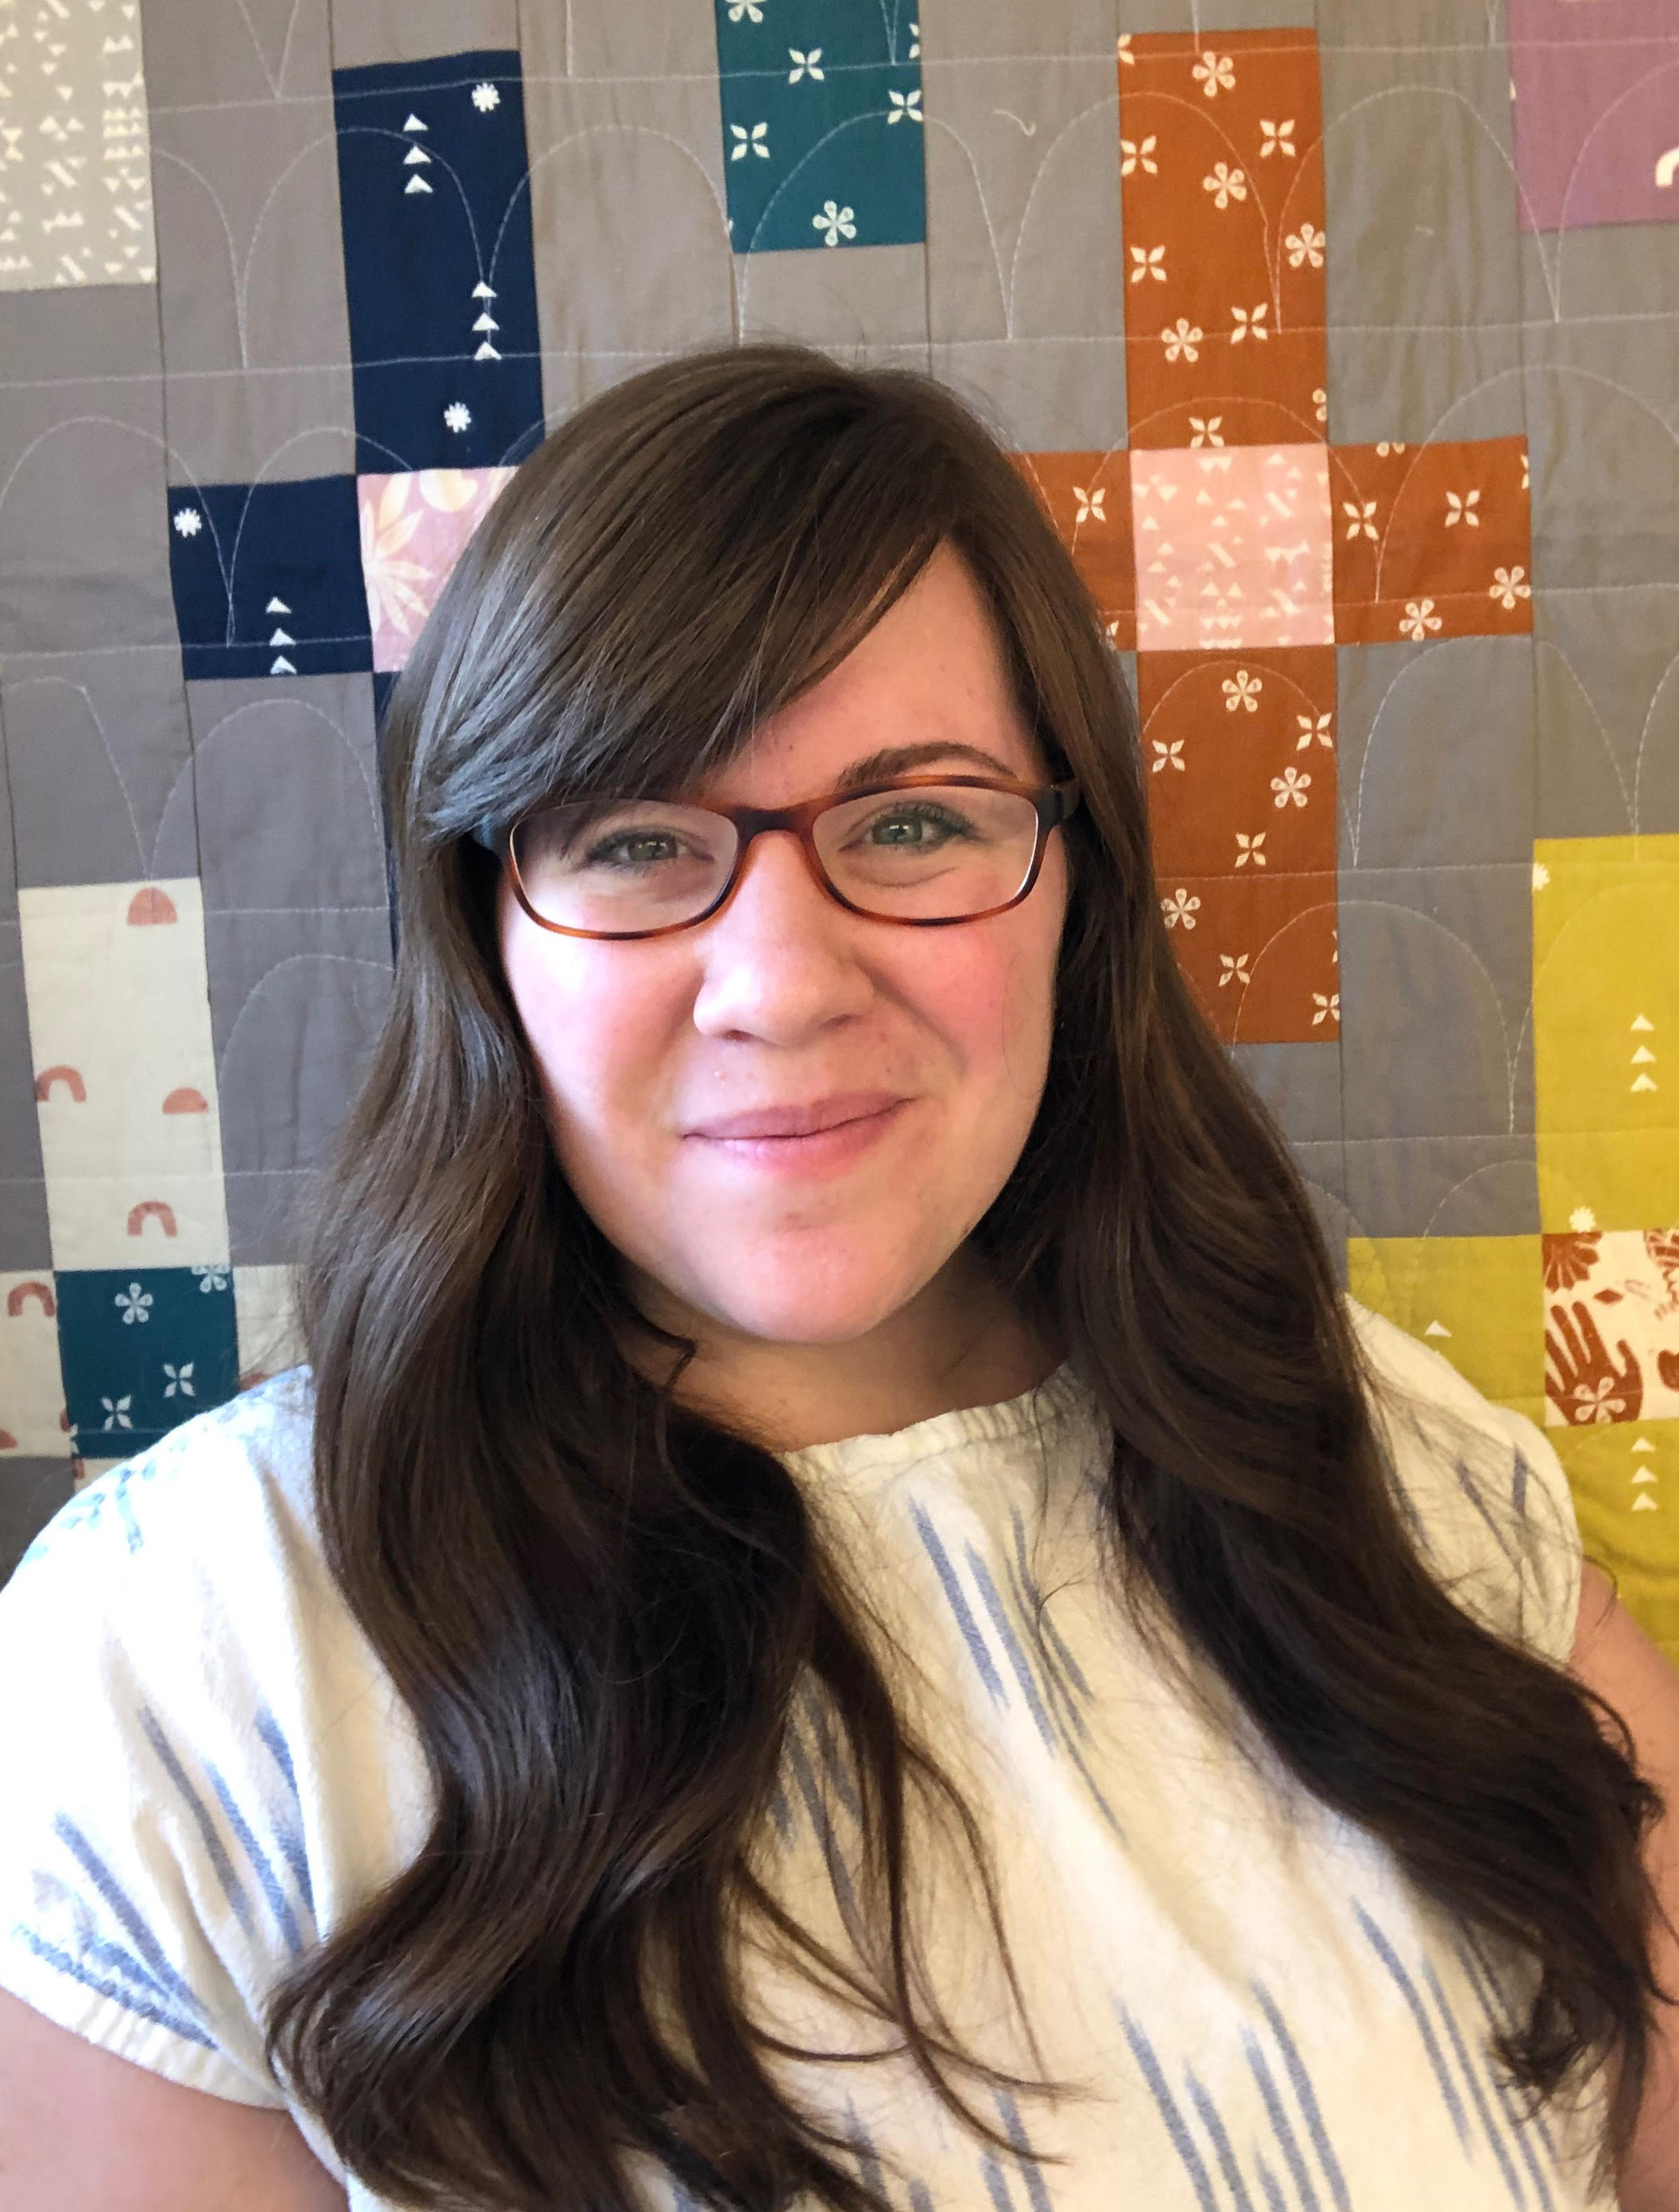 Kristin Rauch of Woolly Petals, in front of her new Moonrise quilt - pattern available in her Etsy shop